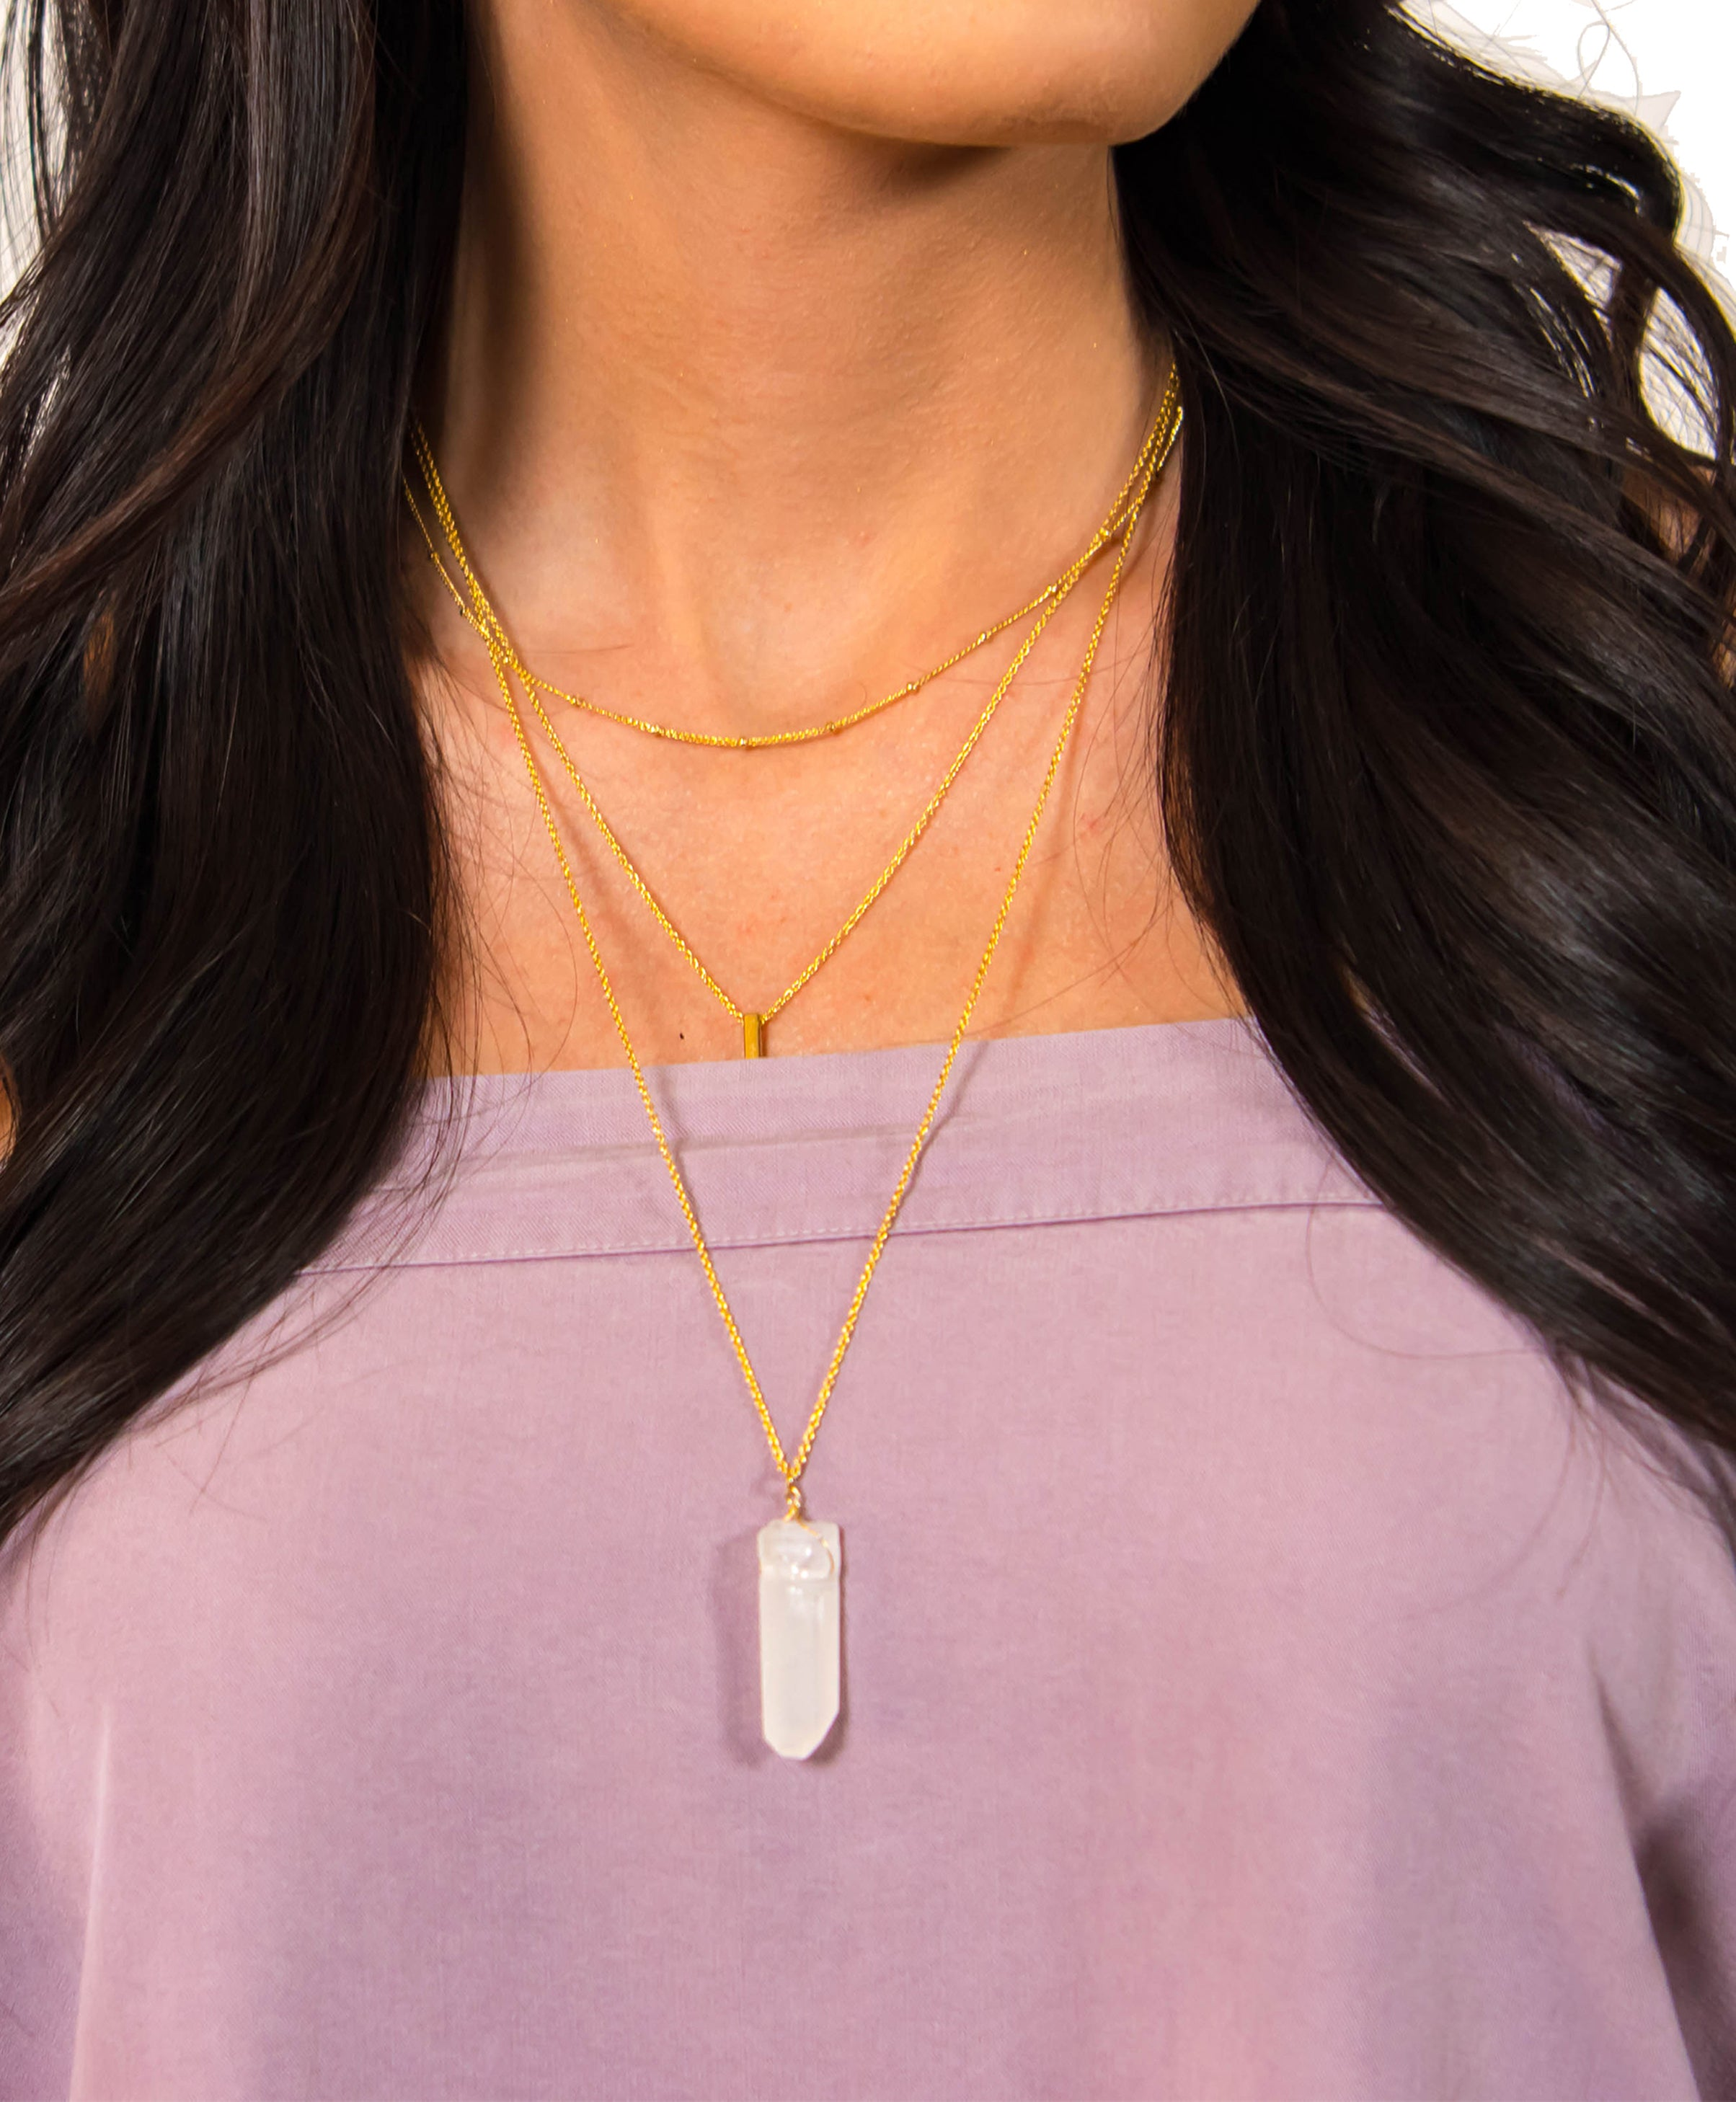 Crystal Layered Necklace | Accessories | Bailey Nicole - Women's Clothes for All Occasions